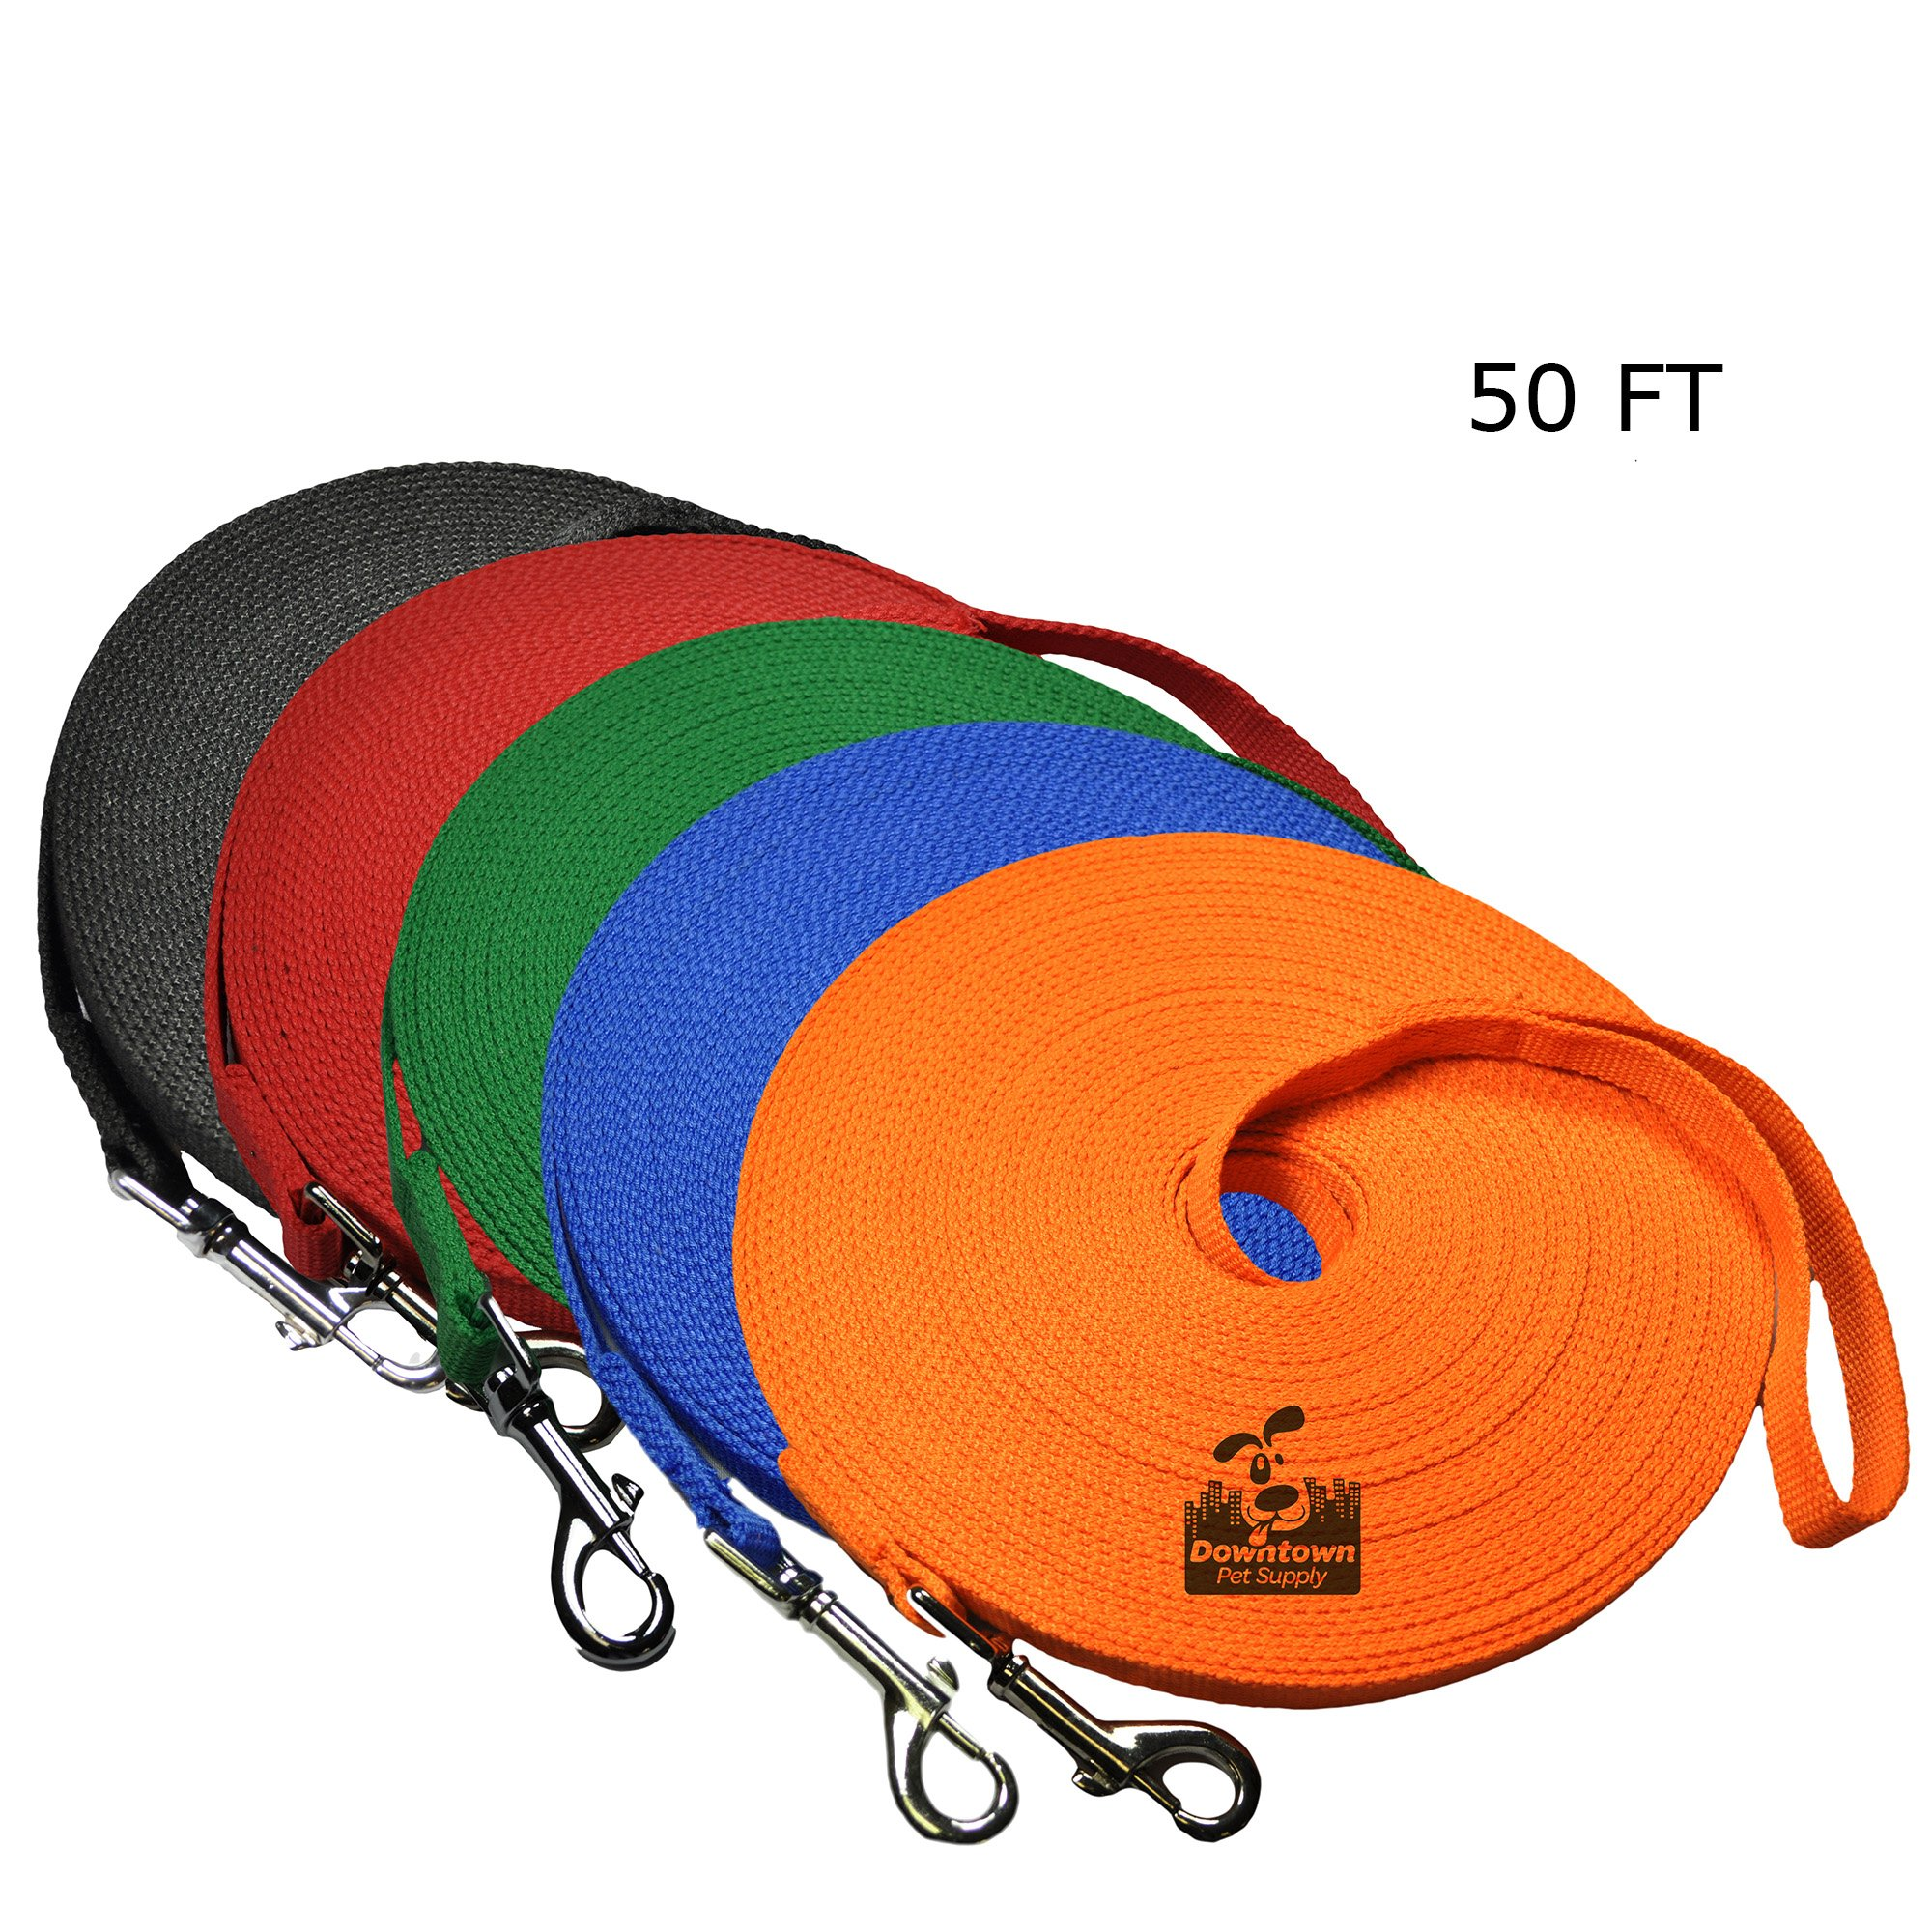 Downtown Pet Supply Long Dog Puppy Obedience Recall Training Agility Lead, Leash - ORANGE, 50' Foot - by